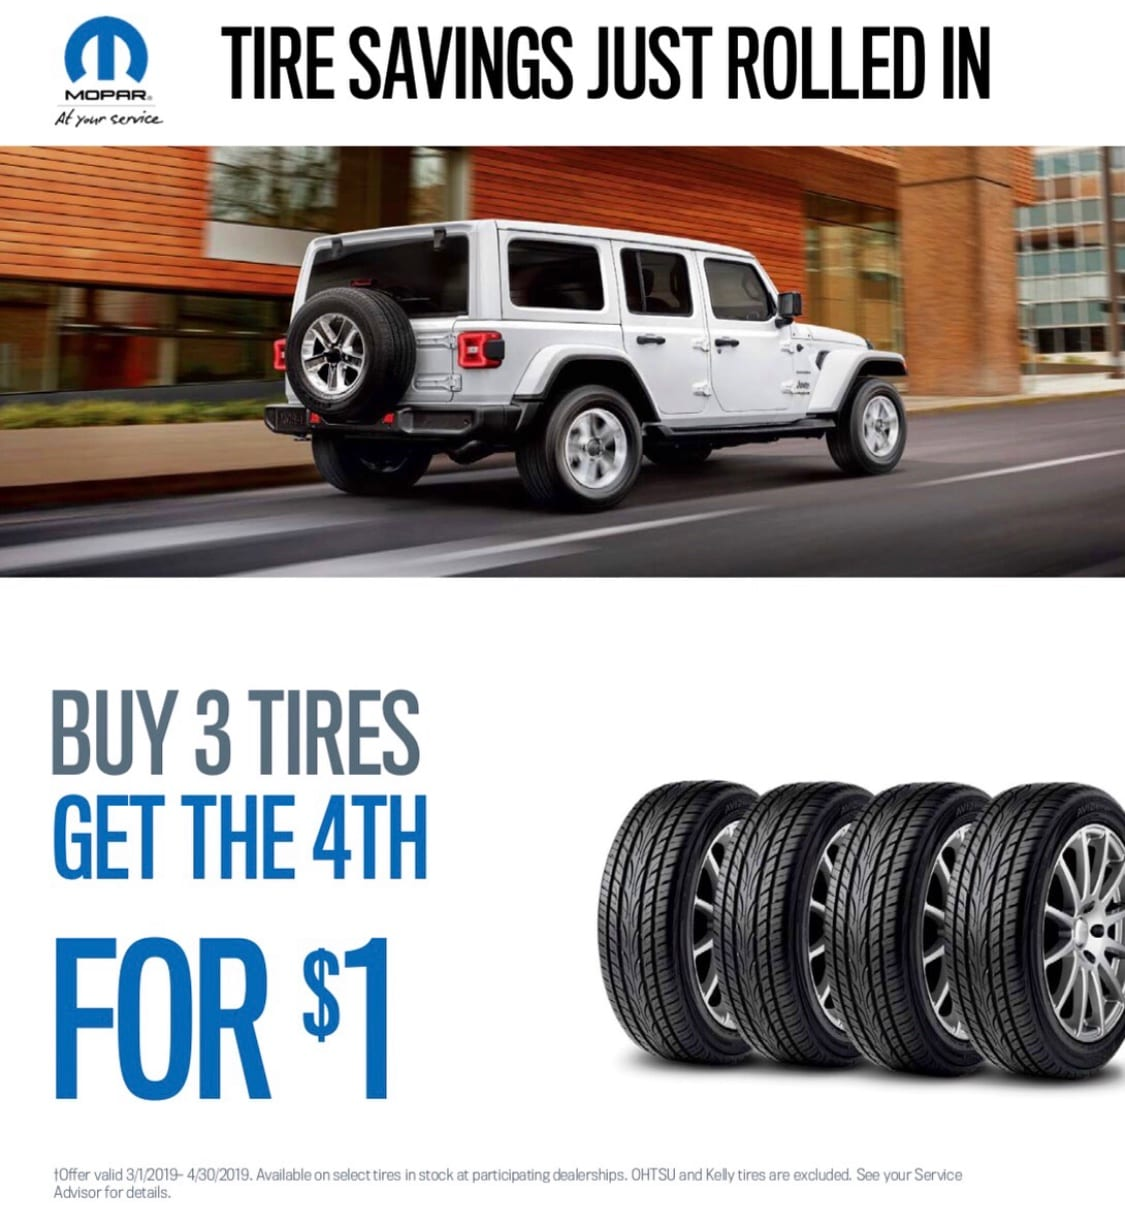 Tire Savings Just Rolled In!